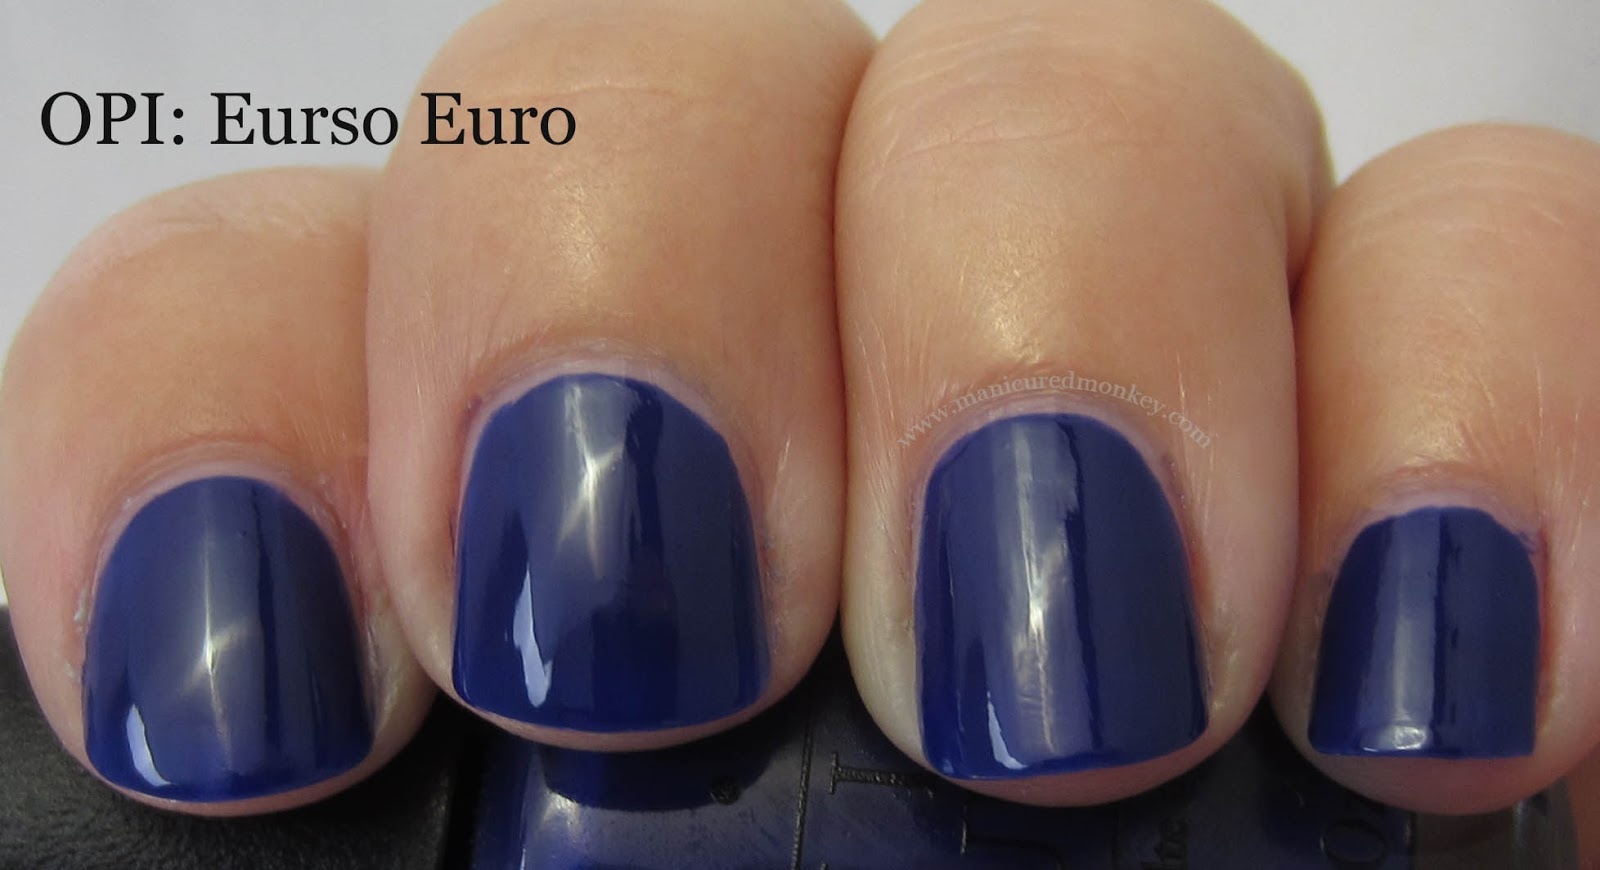 The Manicured Monkey Opi Euro Centrale Swatches